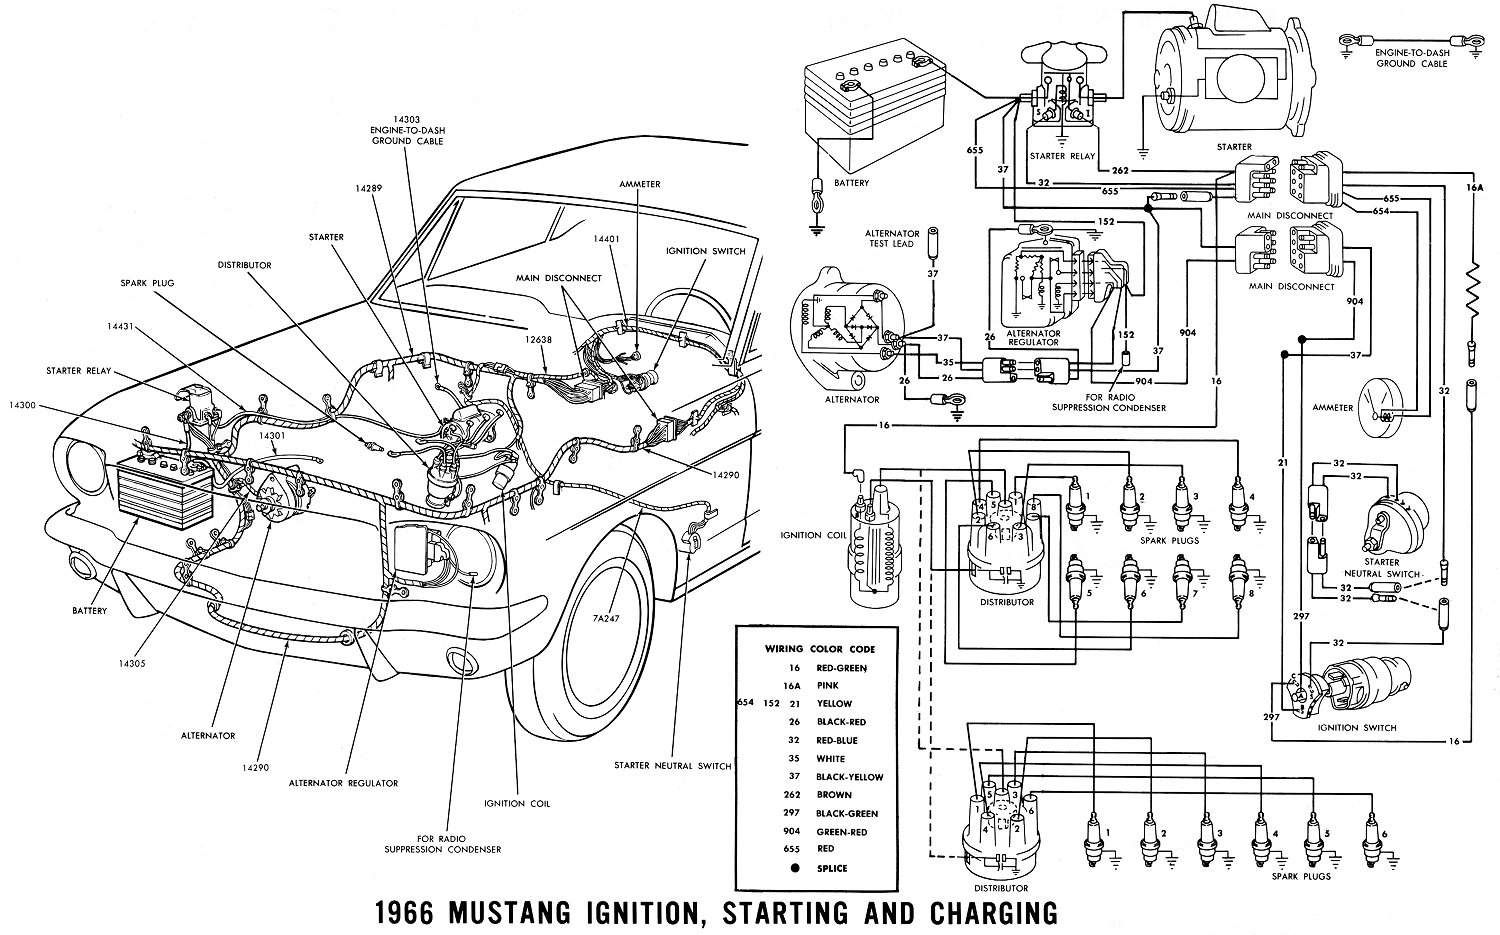 Wiring Diagram Of Ignition Coil On A 04 Ford Mustang 3.9